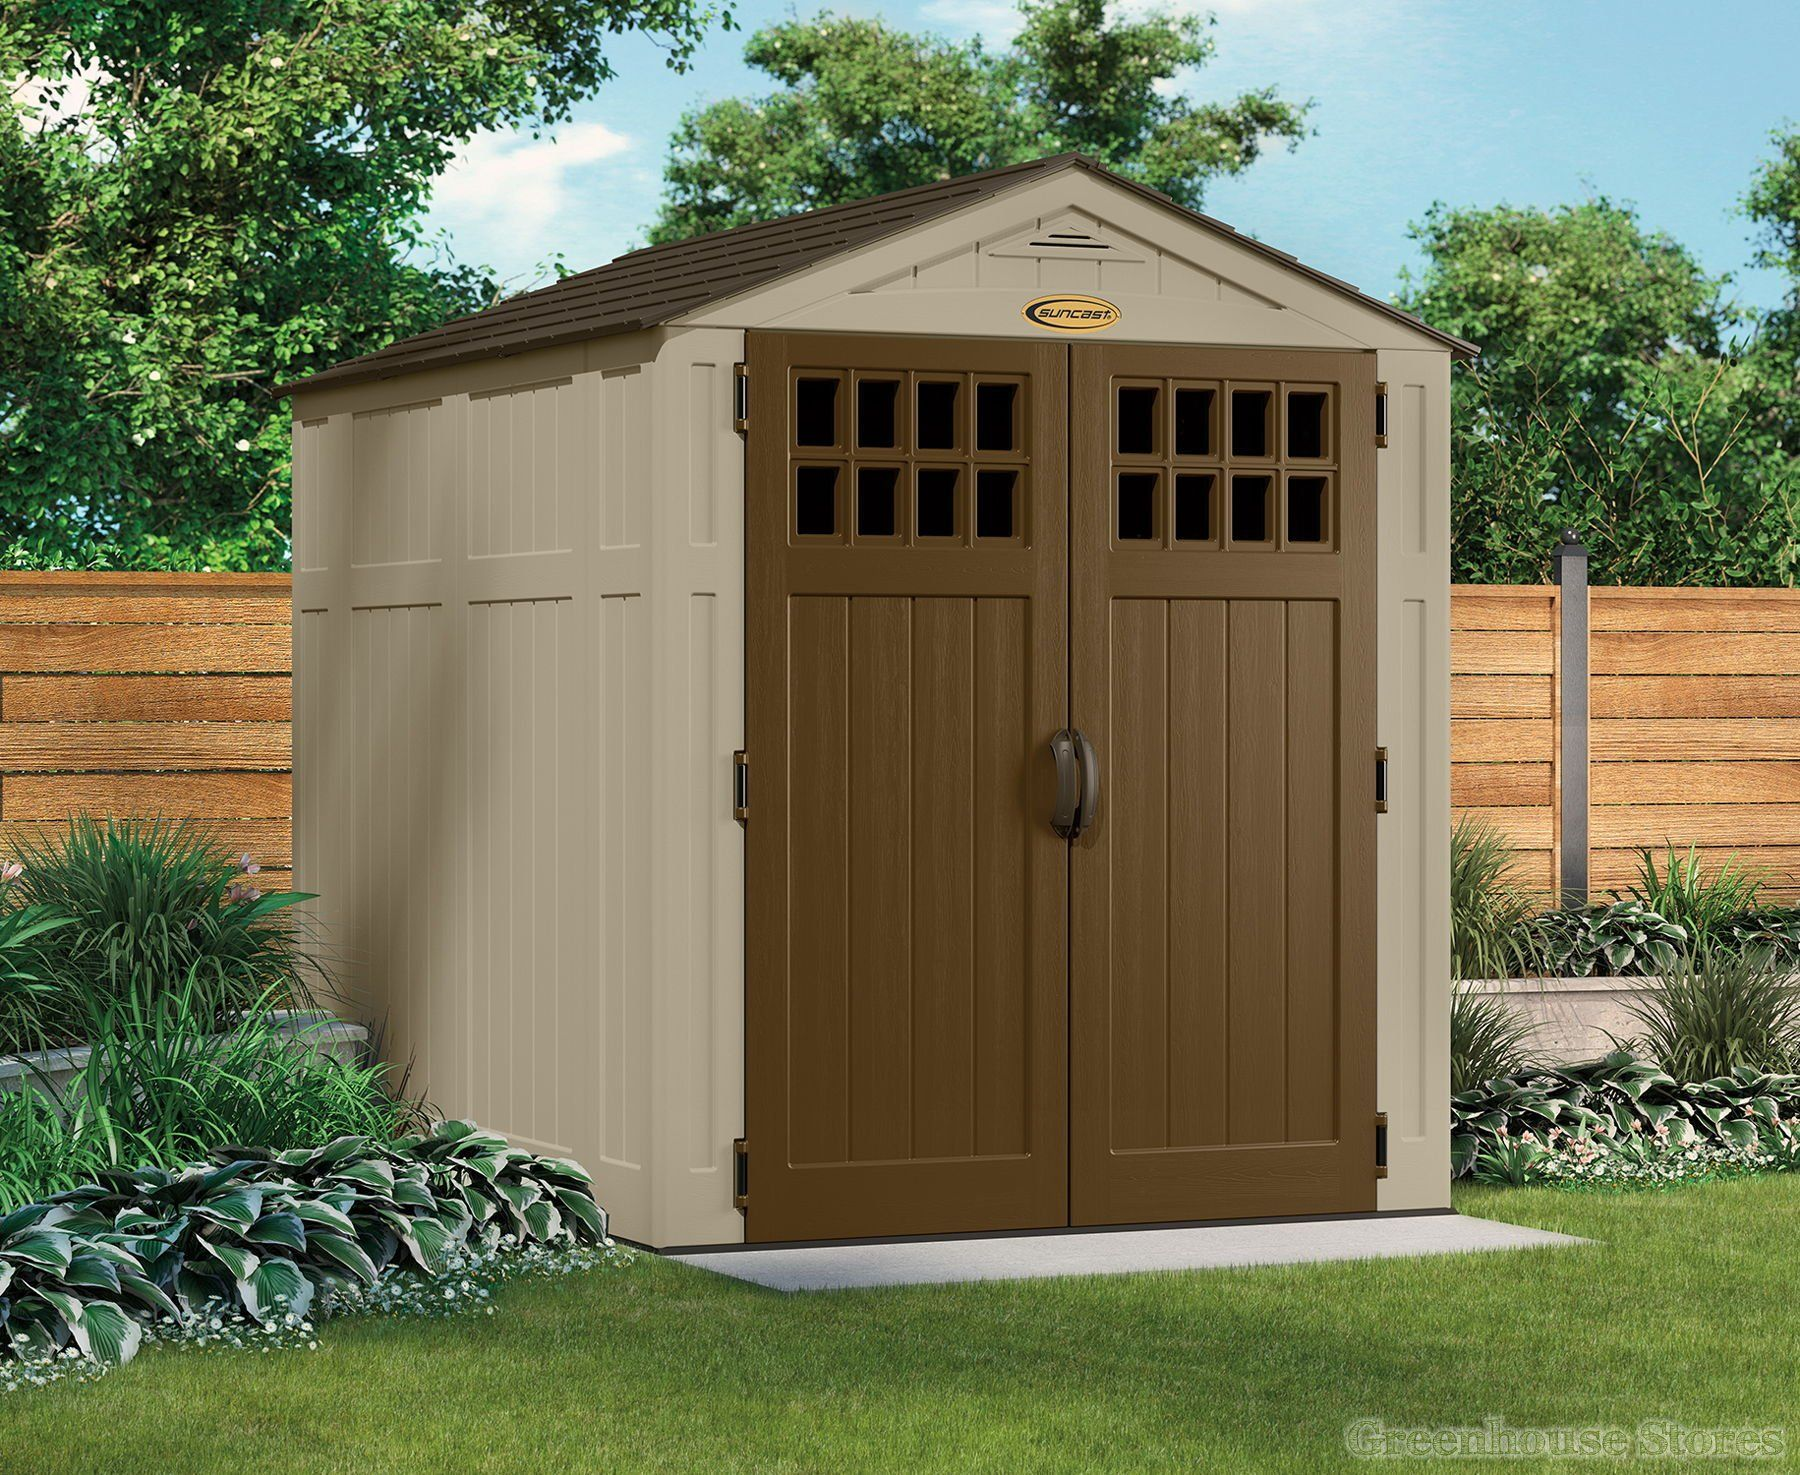 Suncast 6x8 Adlington Three Plastic Garden Shed  Http://www.greenhousestores.co